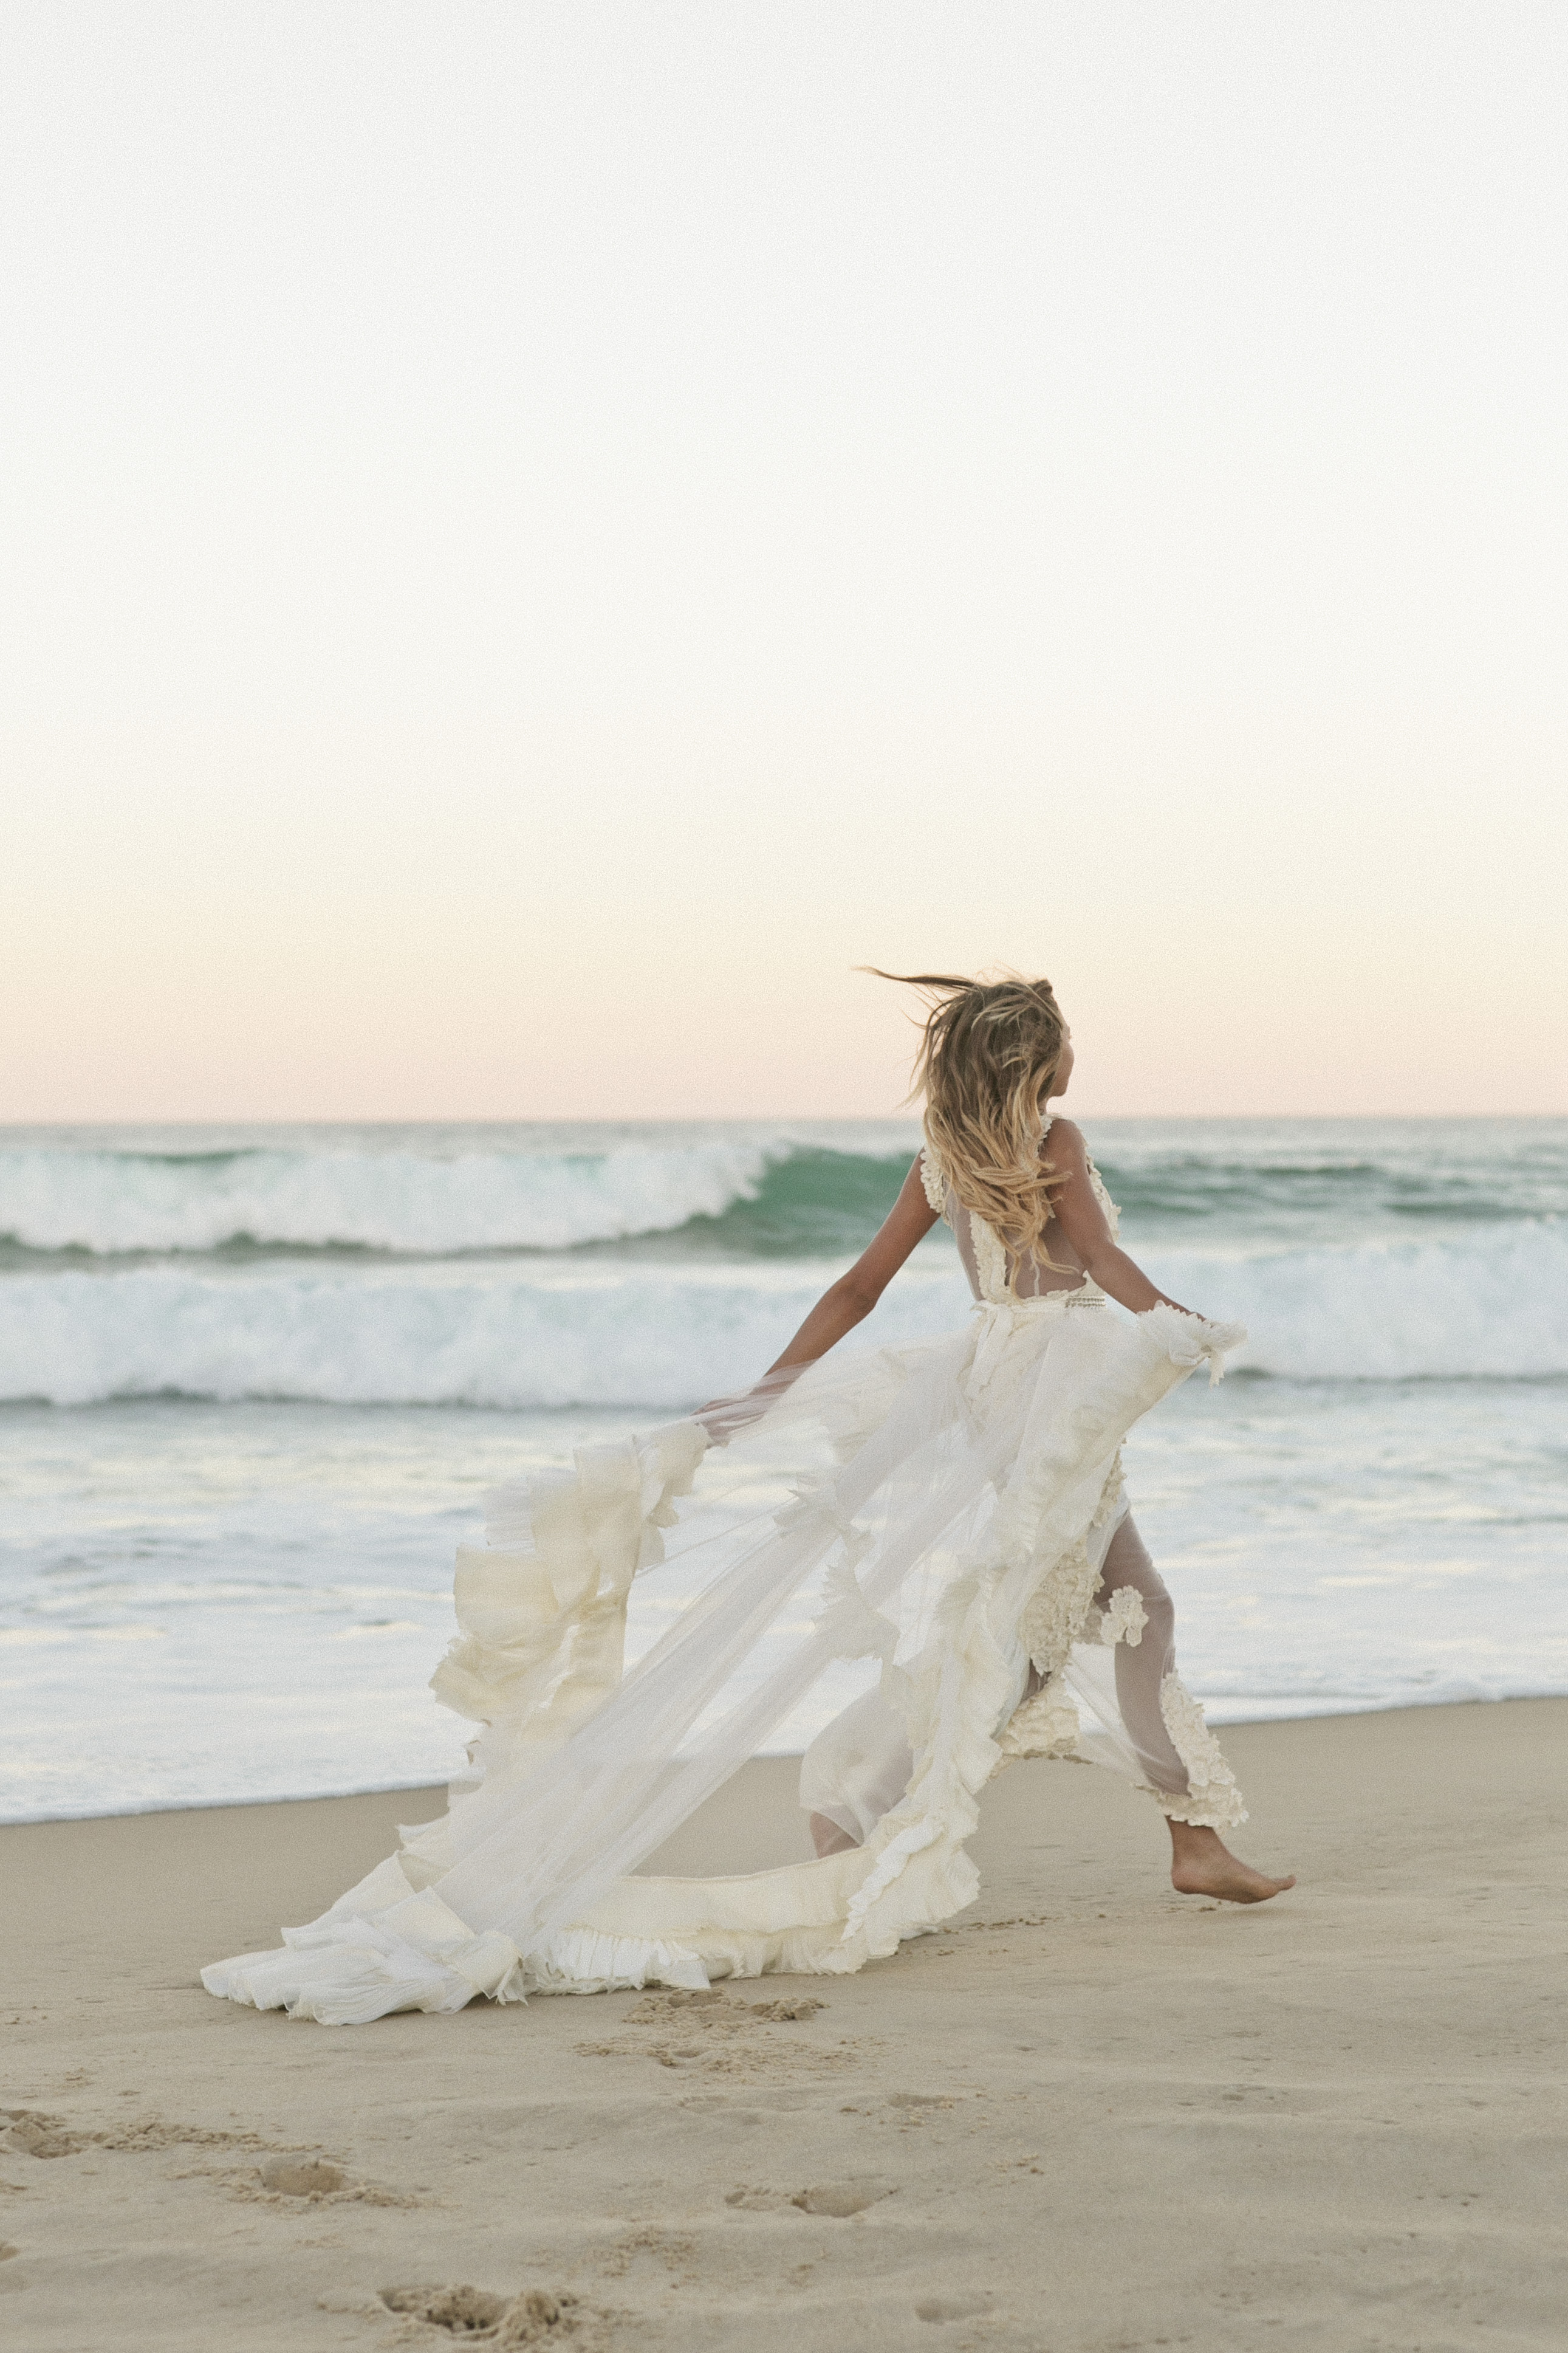 gold coast bridal wear, boho wedding dresses, gold coast wedding dresses, bohemian wedding dress, gold coast tipis, bohemian brides